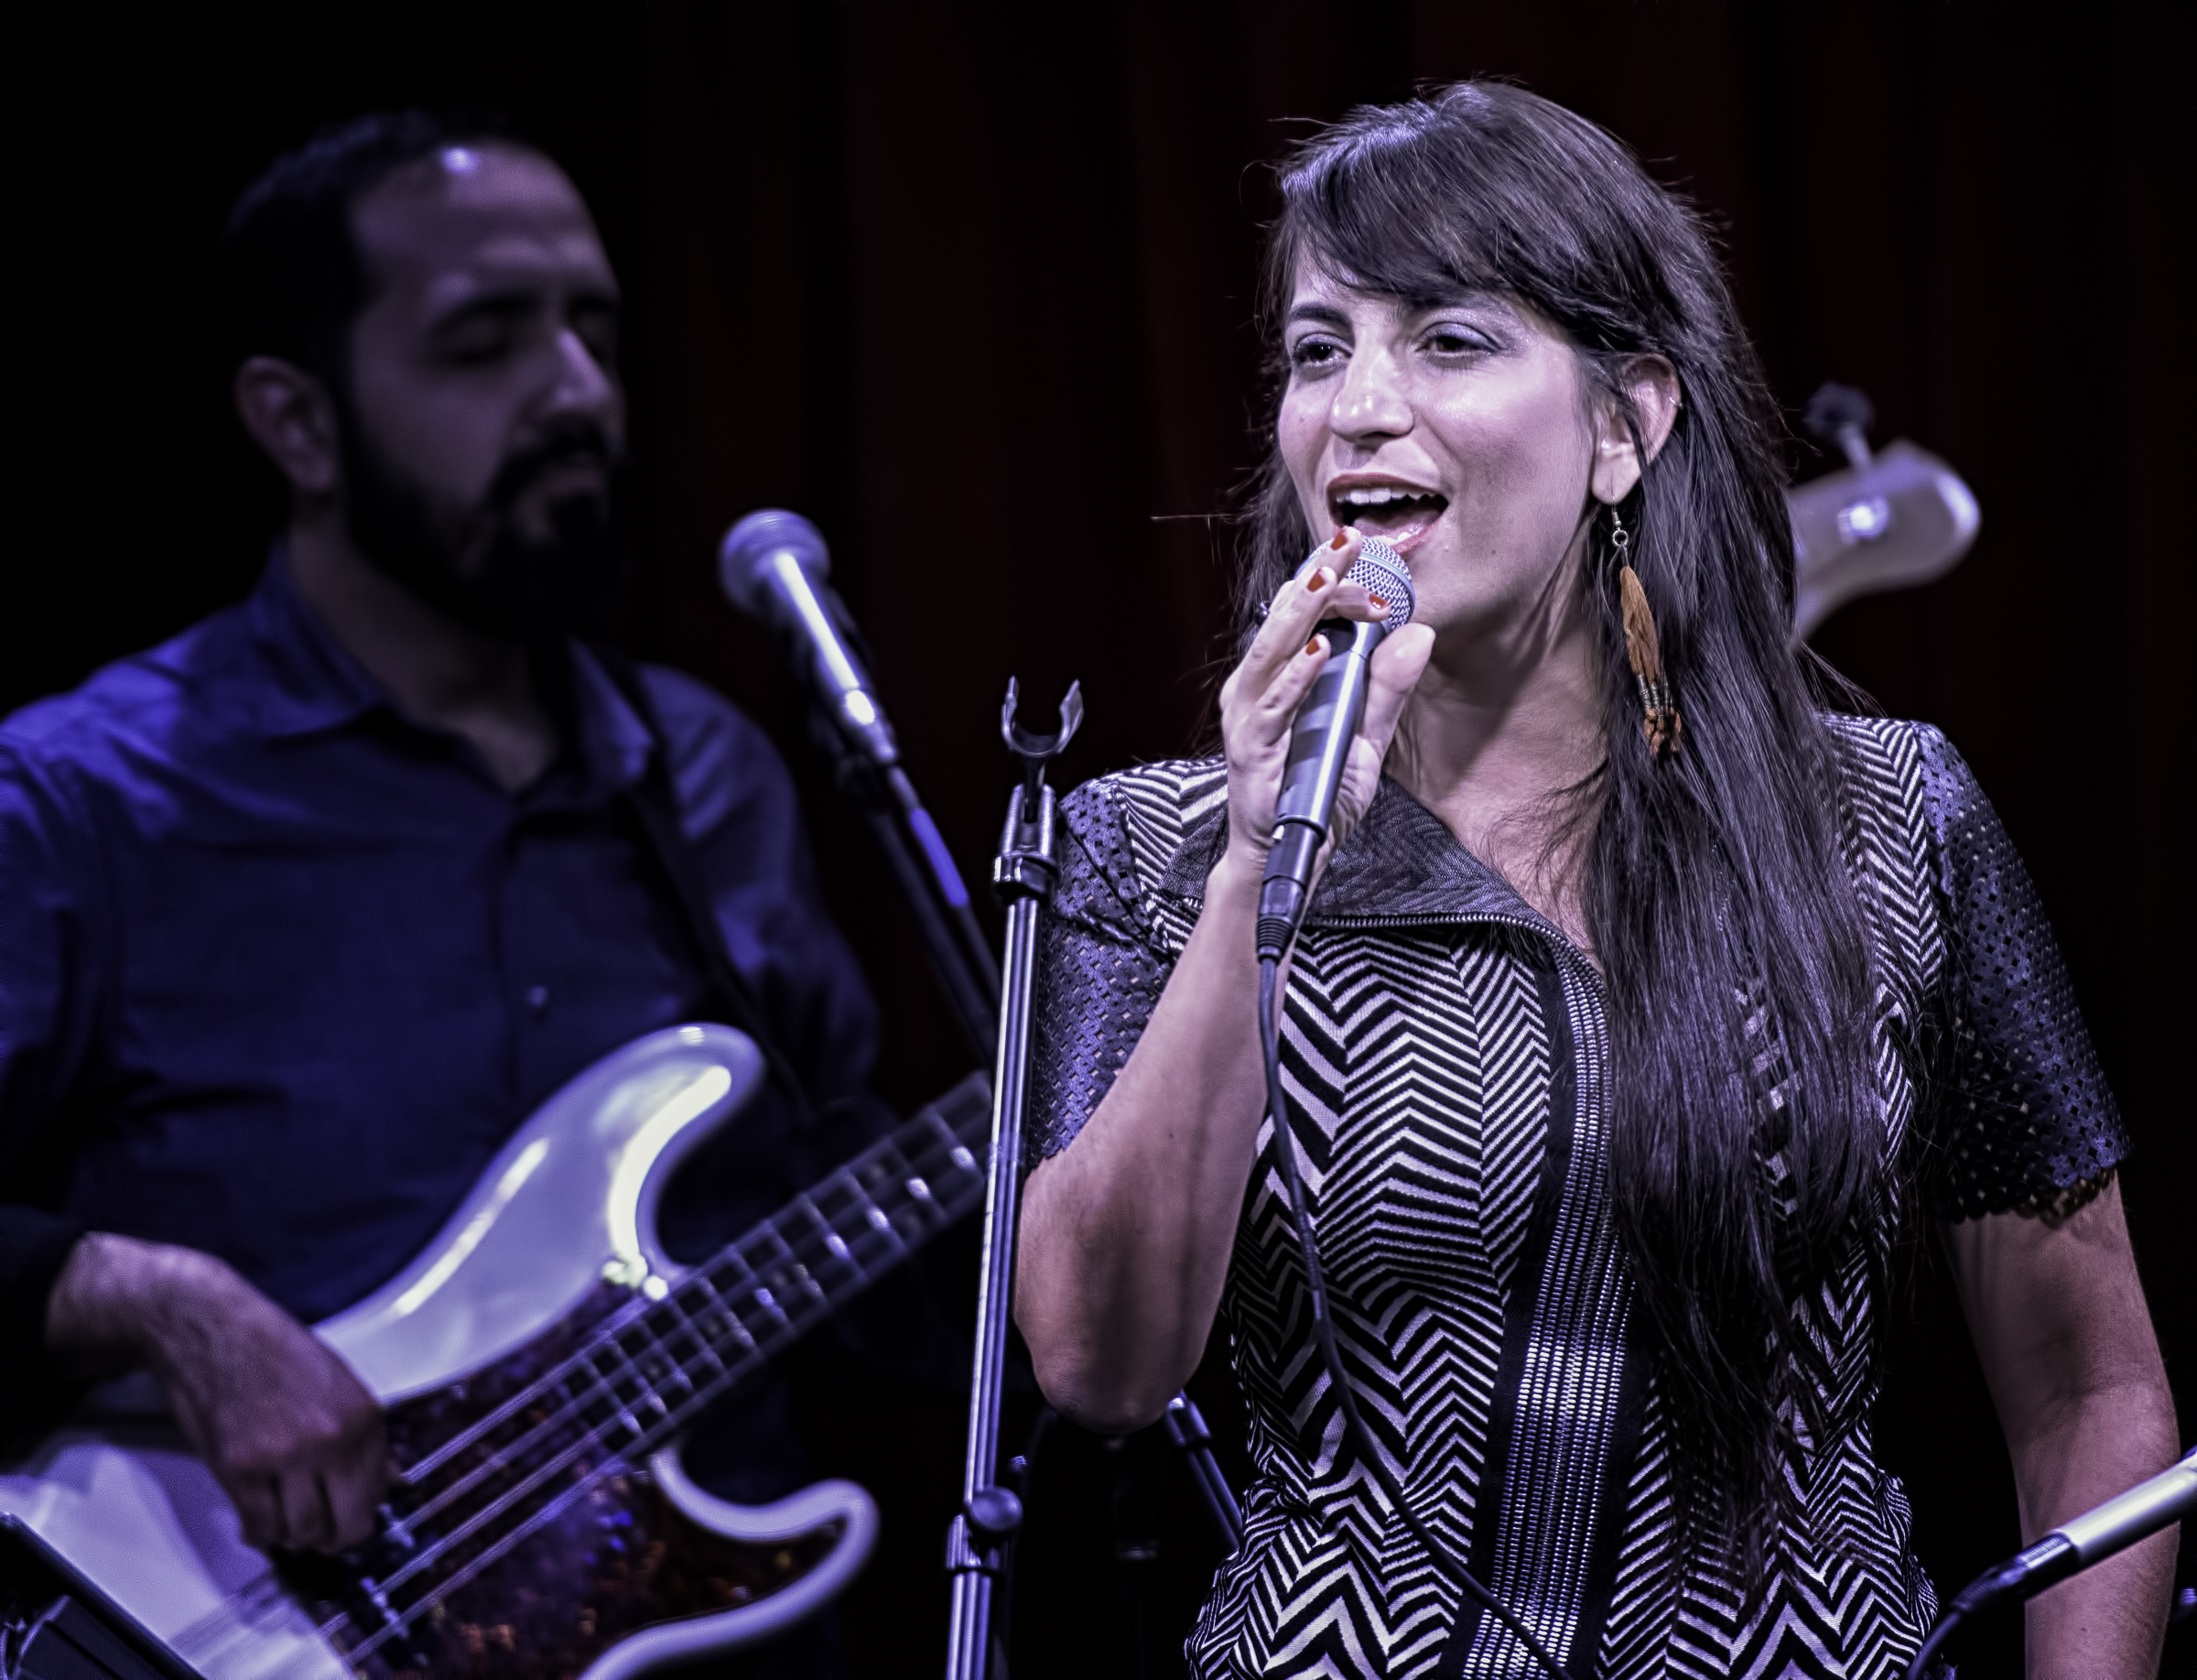 Sofia Rei and Jorge Roeder At The NYC Winter Jazzfest 2016